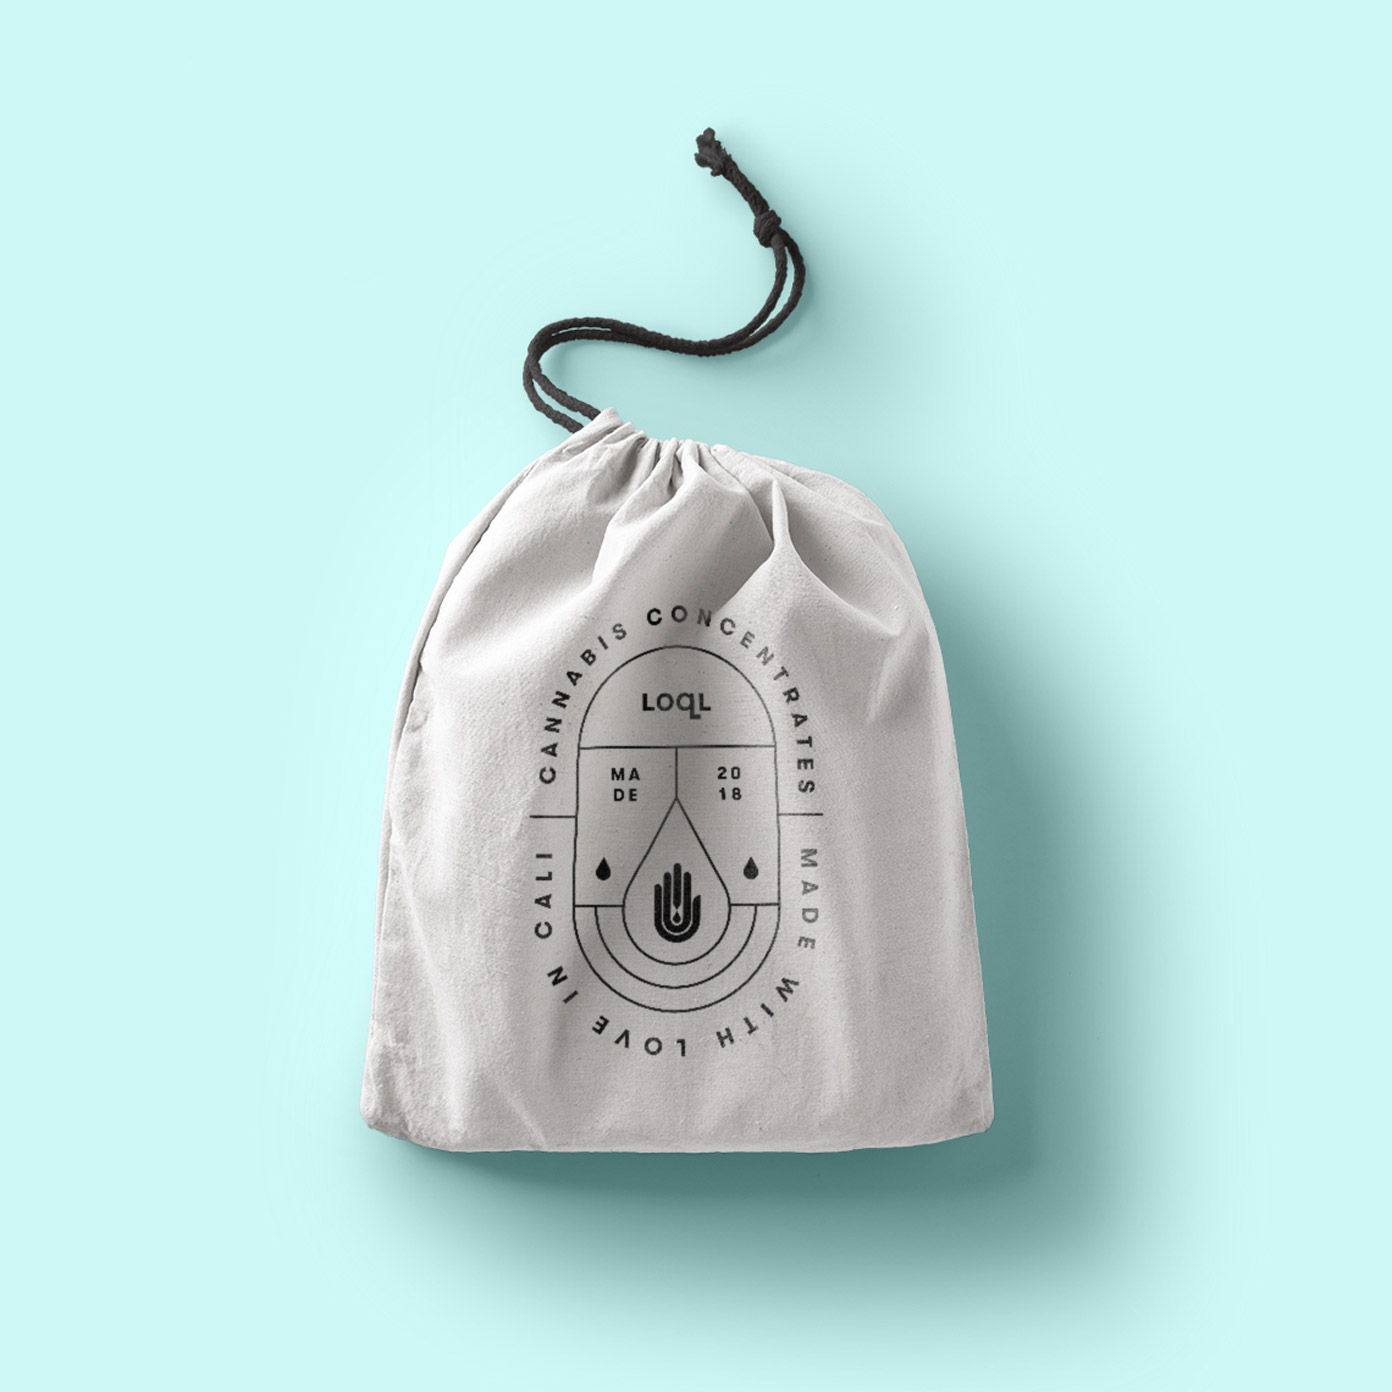 LOQL Canvas bag emblem